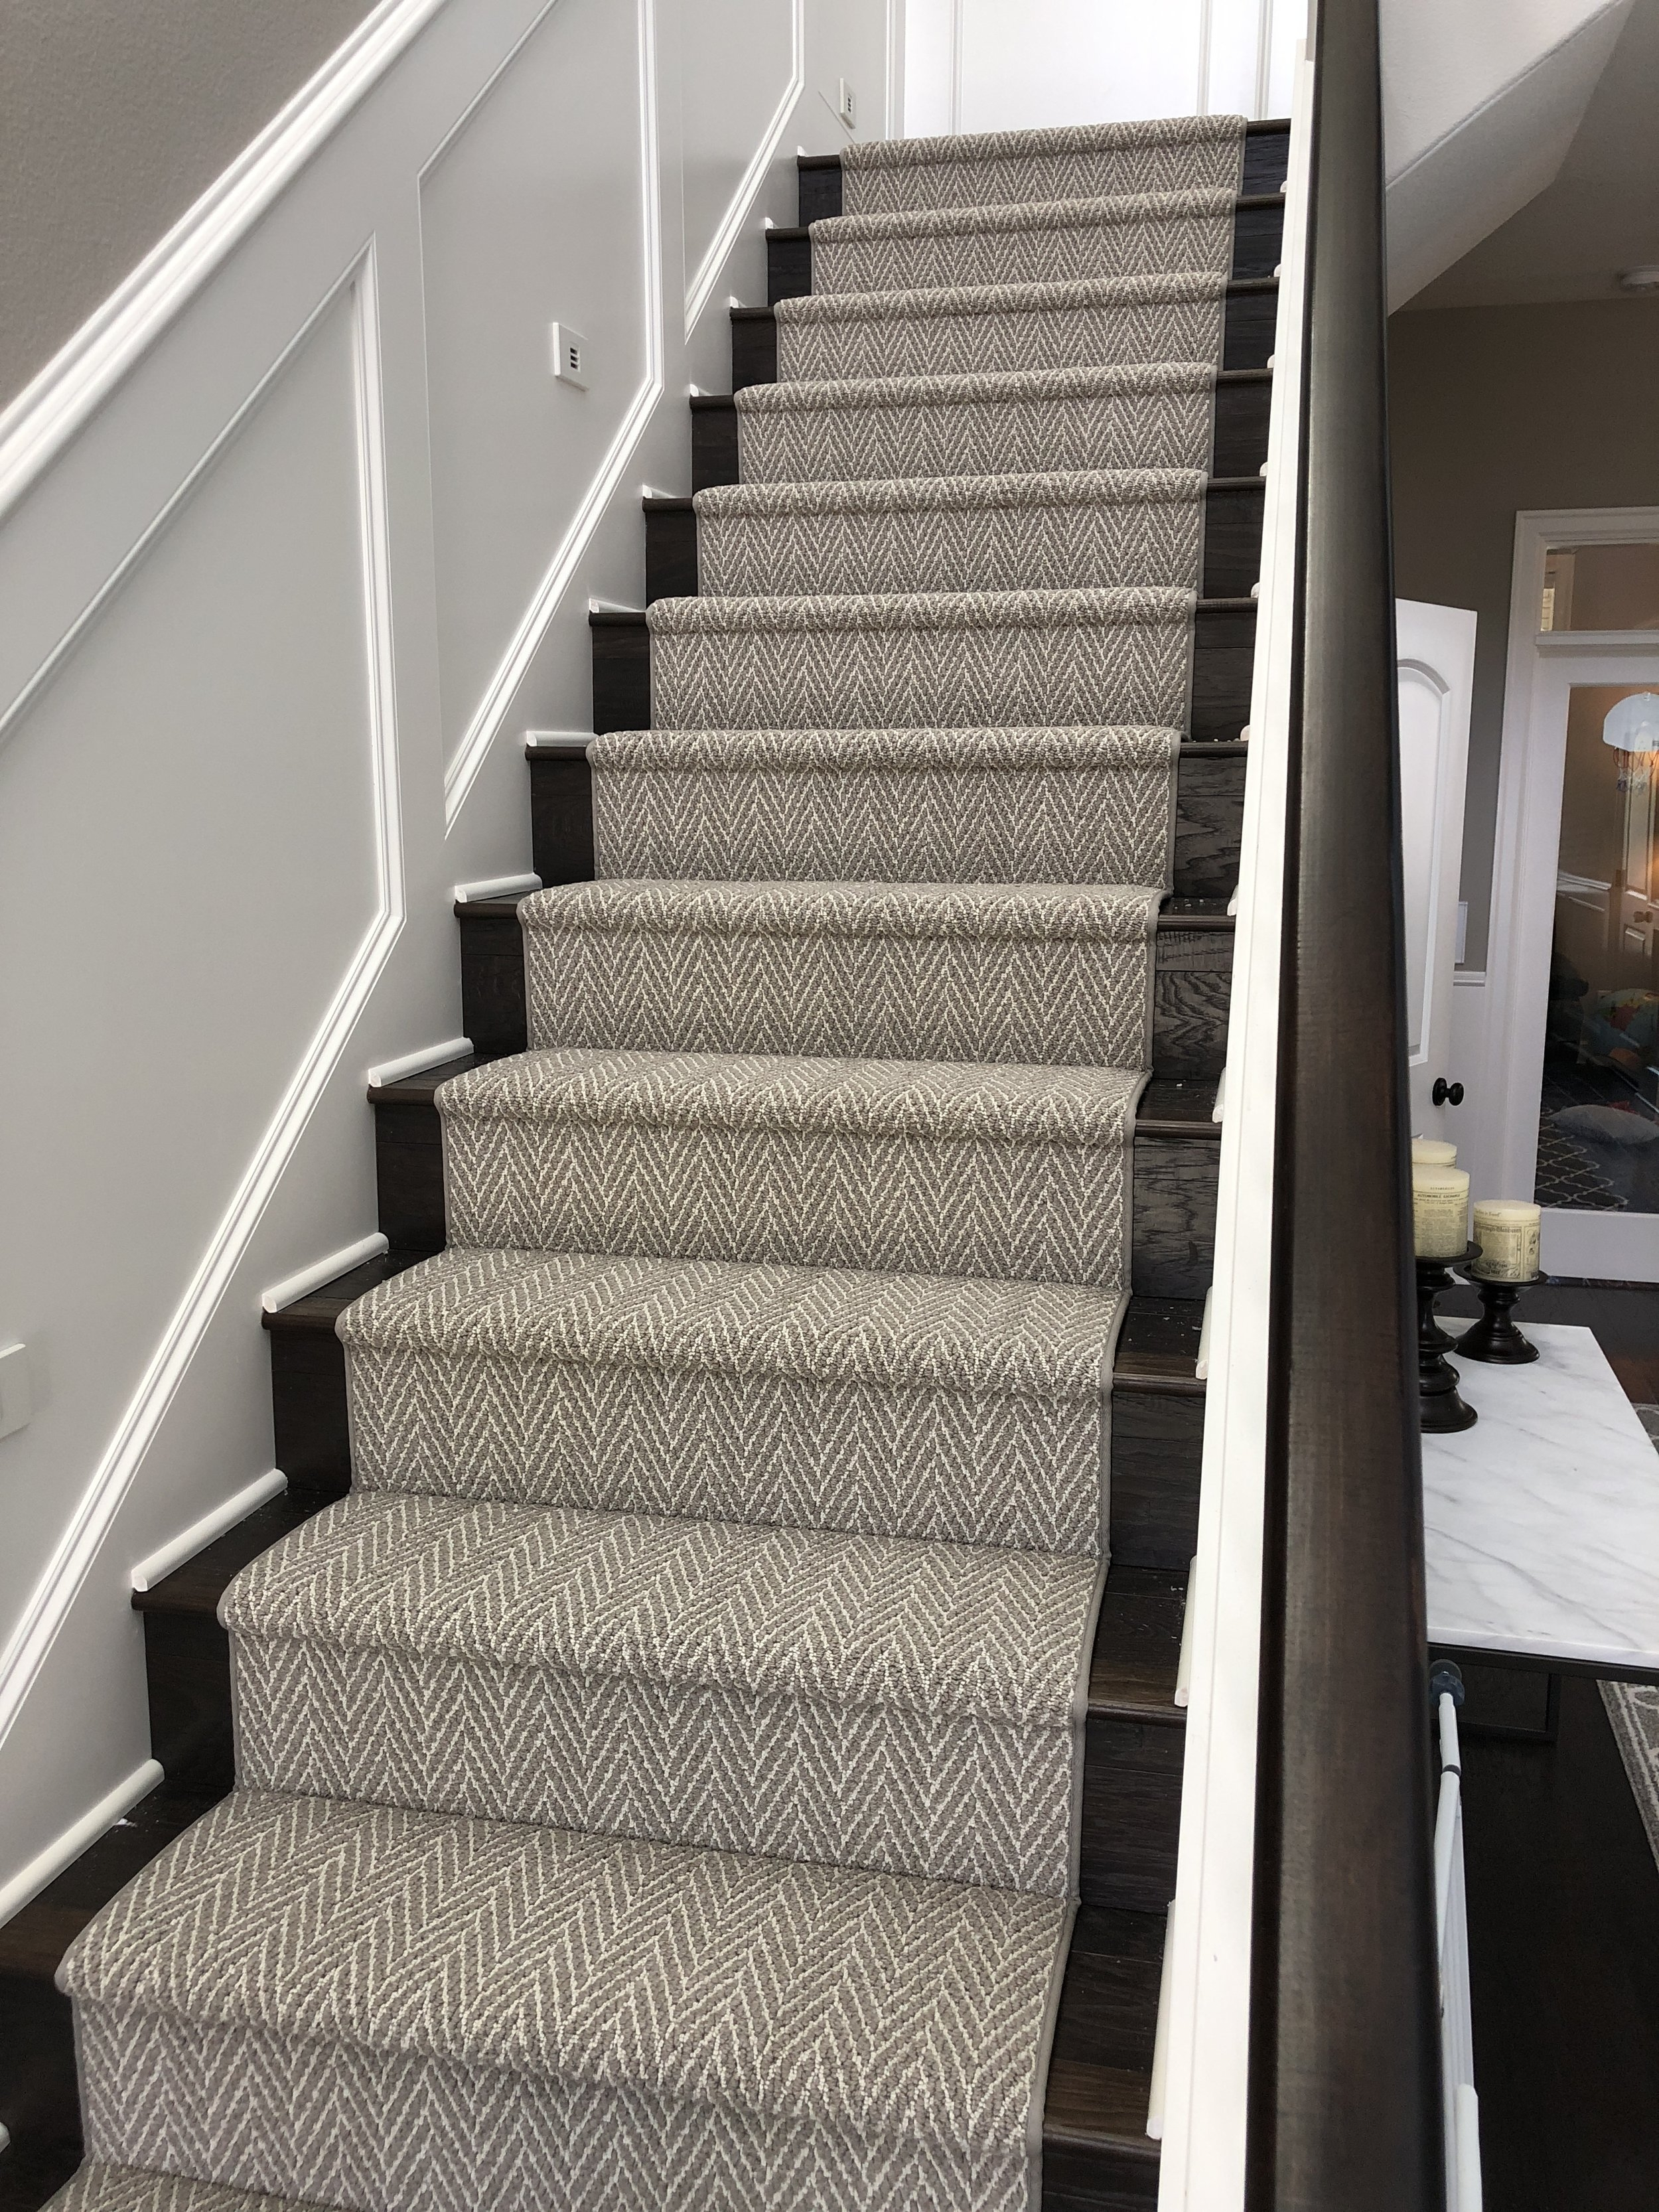 Carpet Flooring Installations Gallery — Koeber S Interiors   Carpet On Stairs Only   Concept   Line Carpet Staircase Double   Pinstripe Grey   Grey   Wood